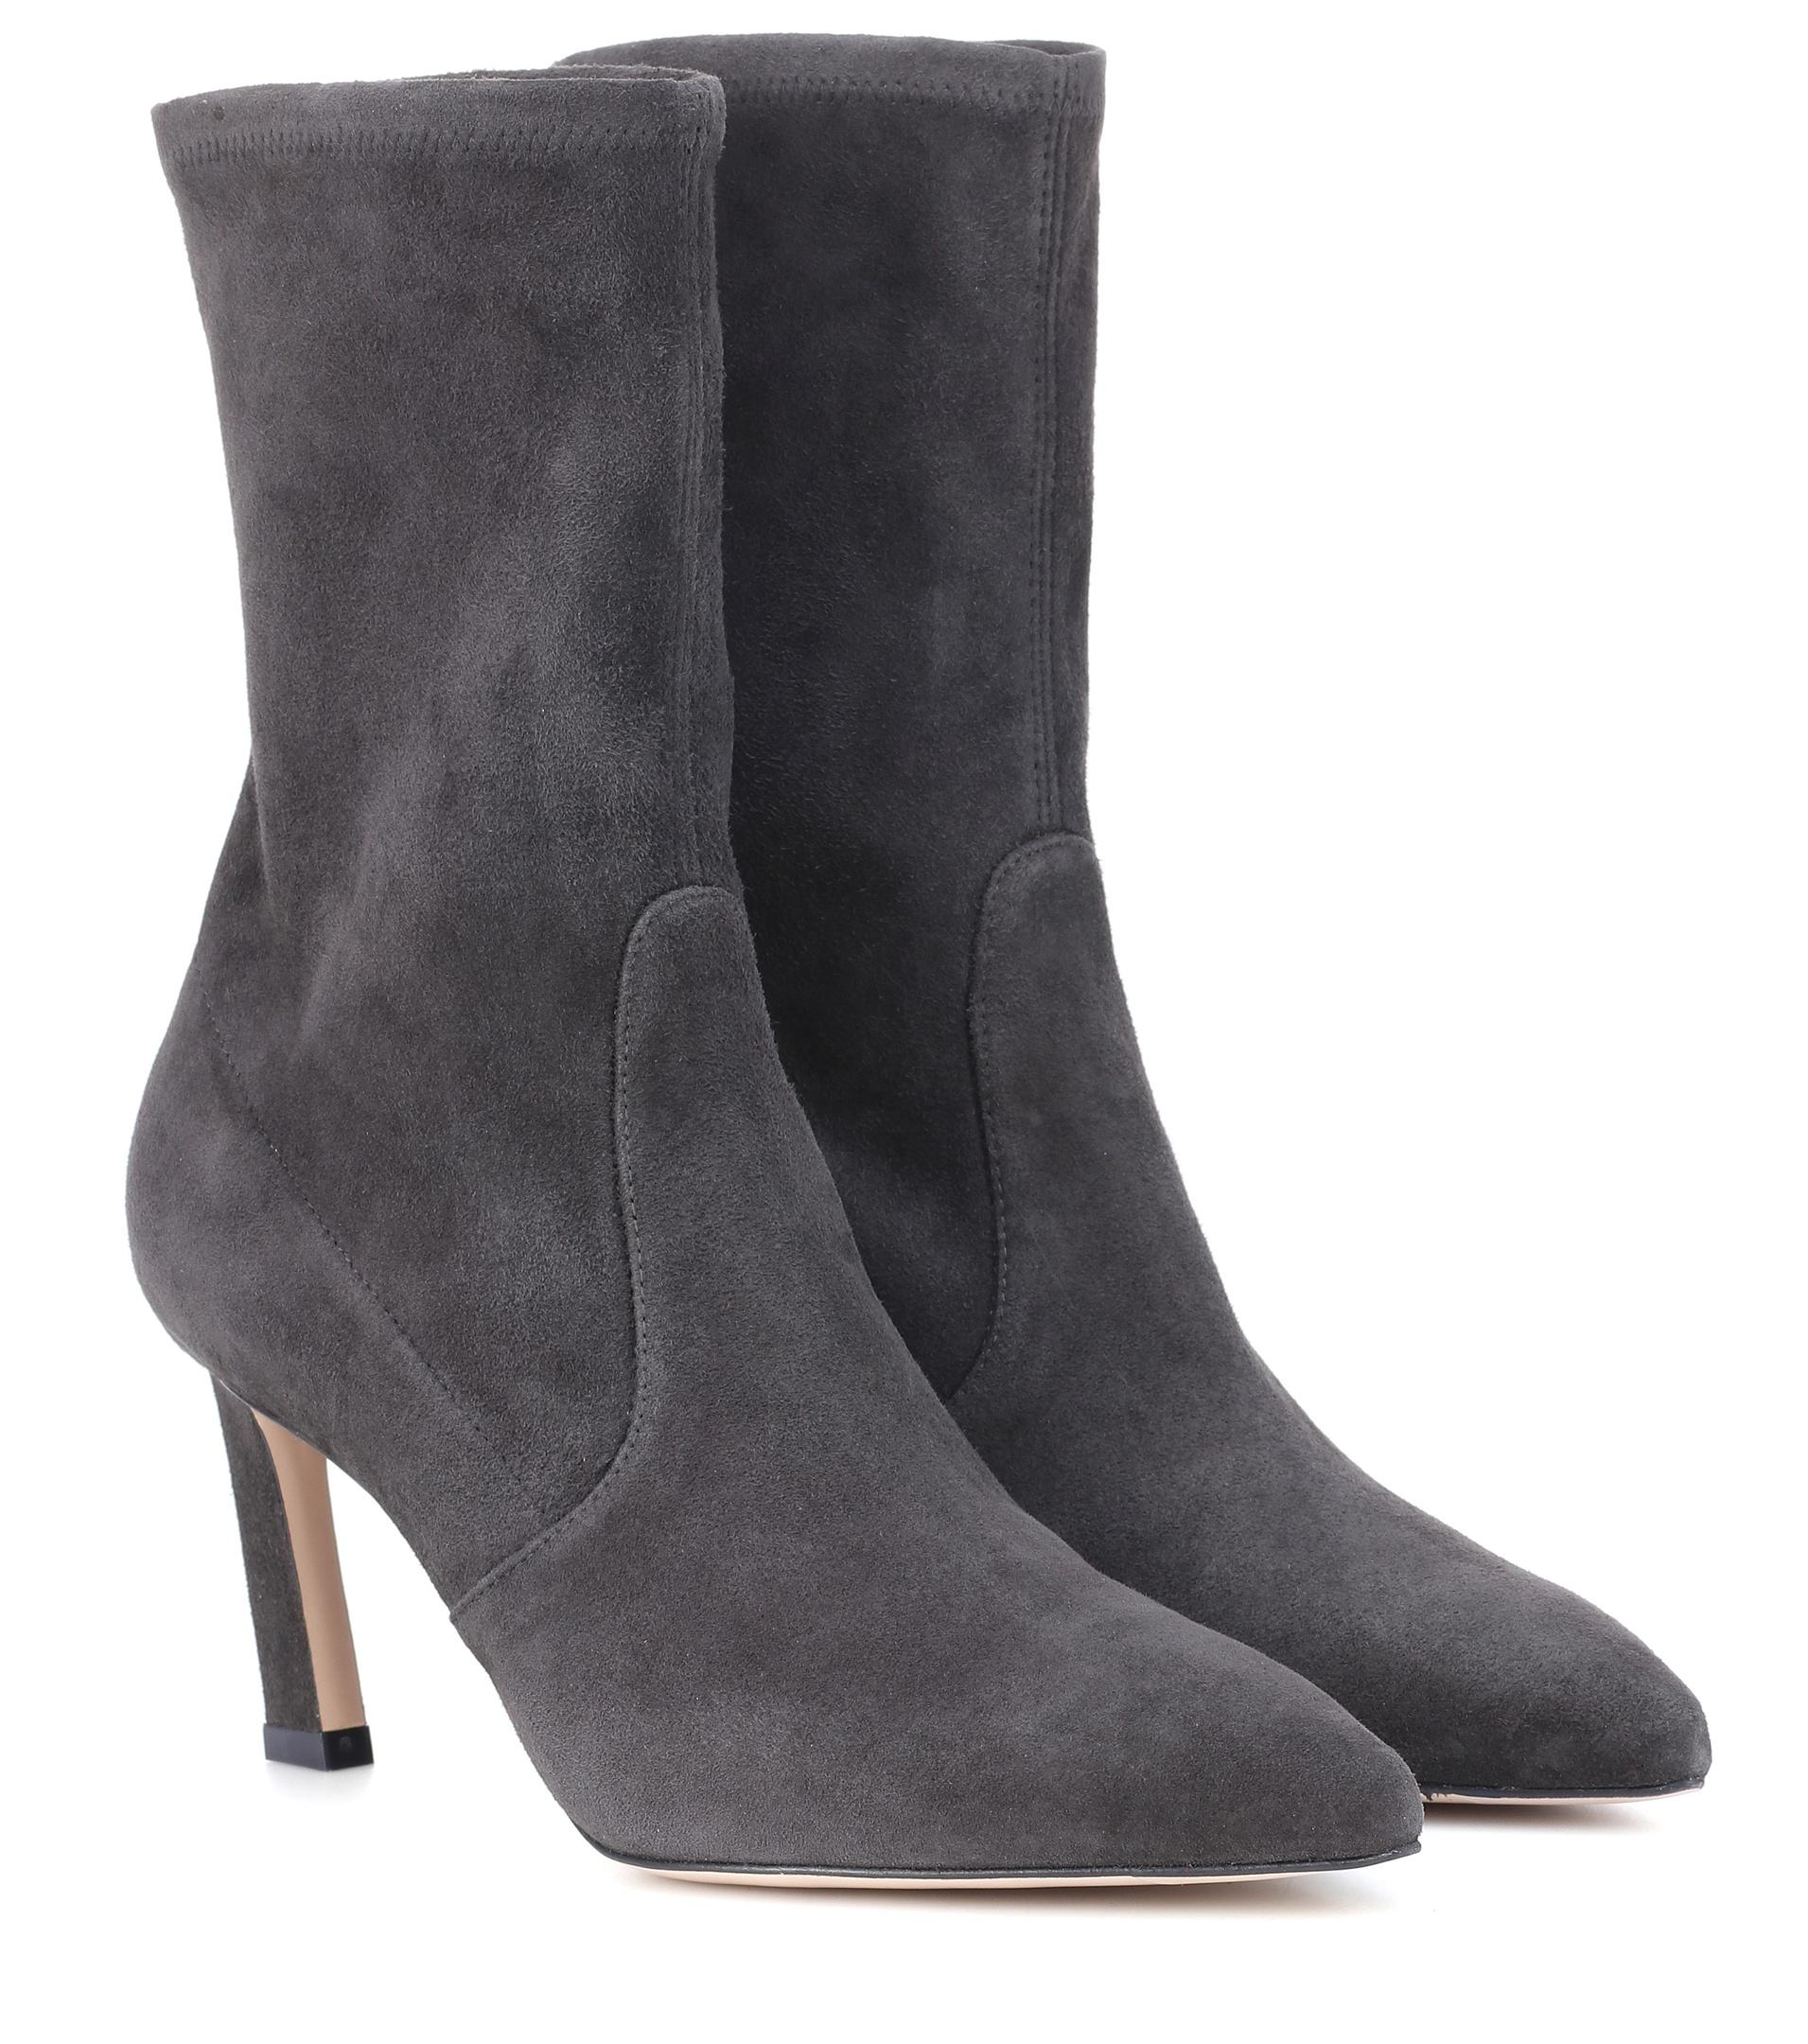 Rapture 75 boots - Grey Stuart Weitzman Cheap Choice Cheap Sale Shop For Hyper Online n6oB6NuWk